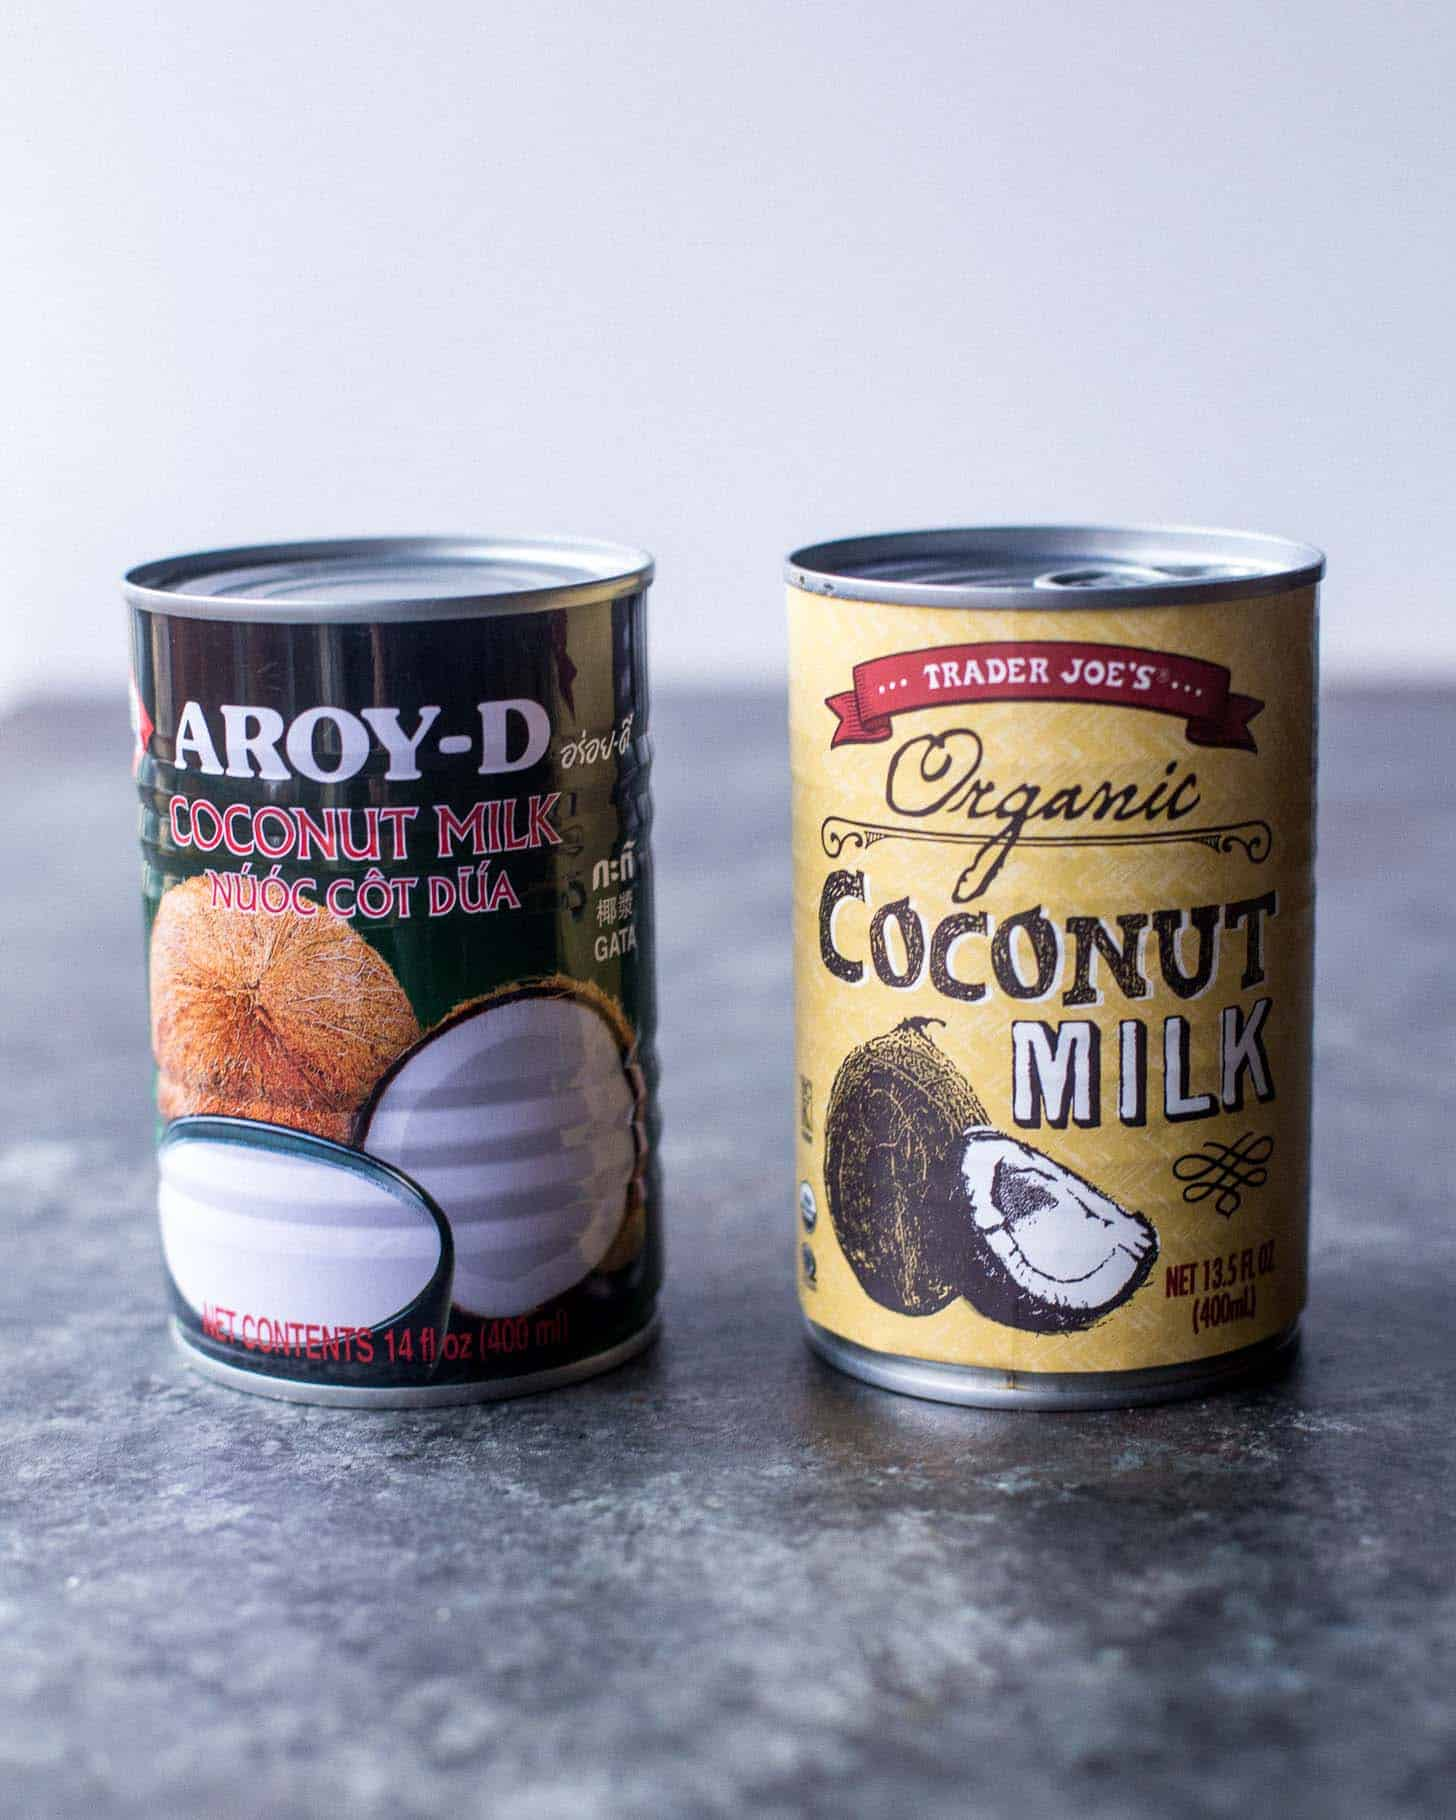 2 cans of coconut milk on a grey countertop